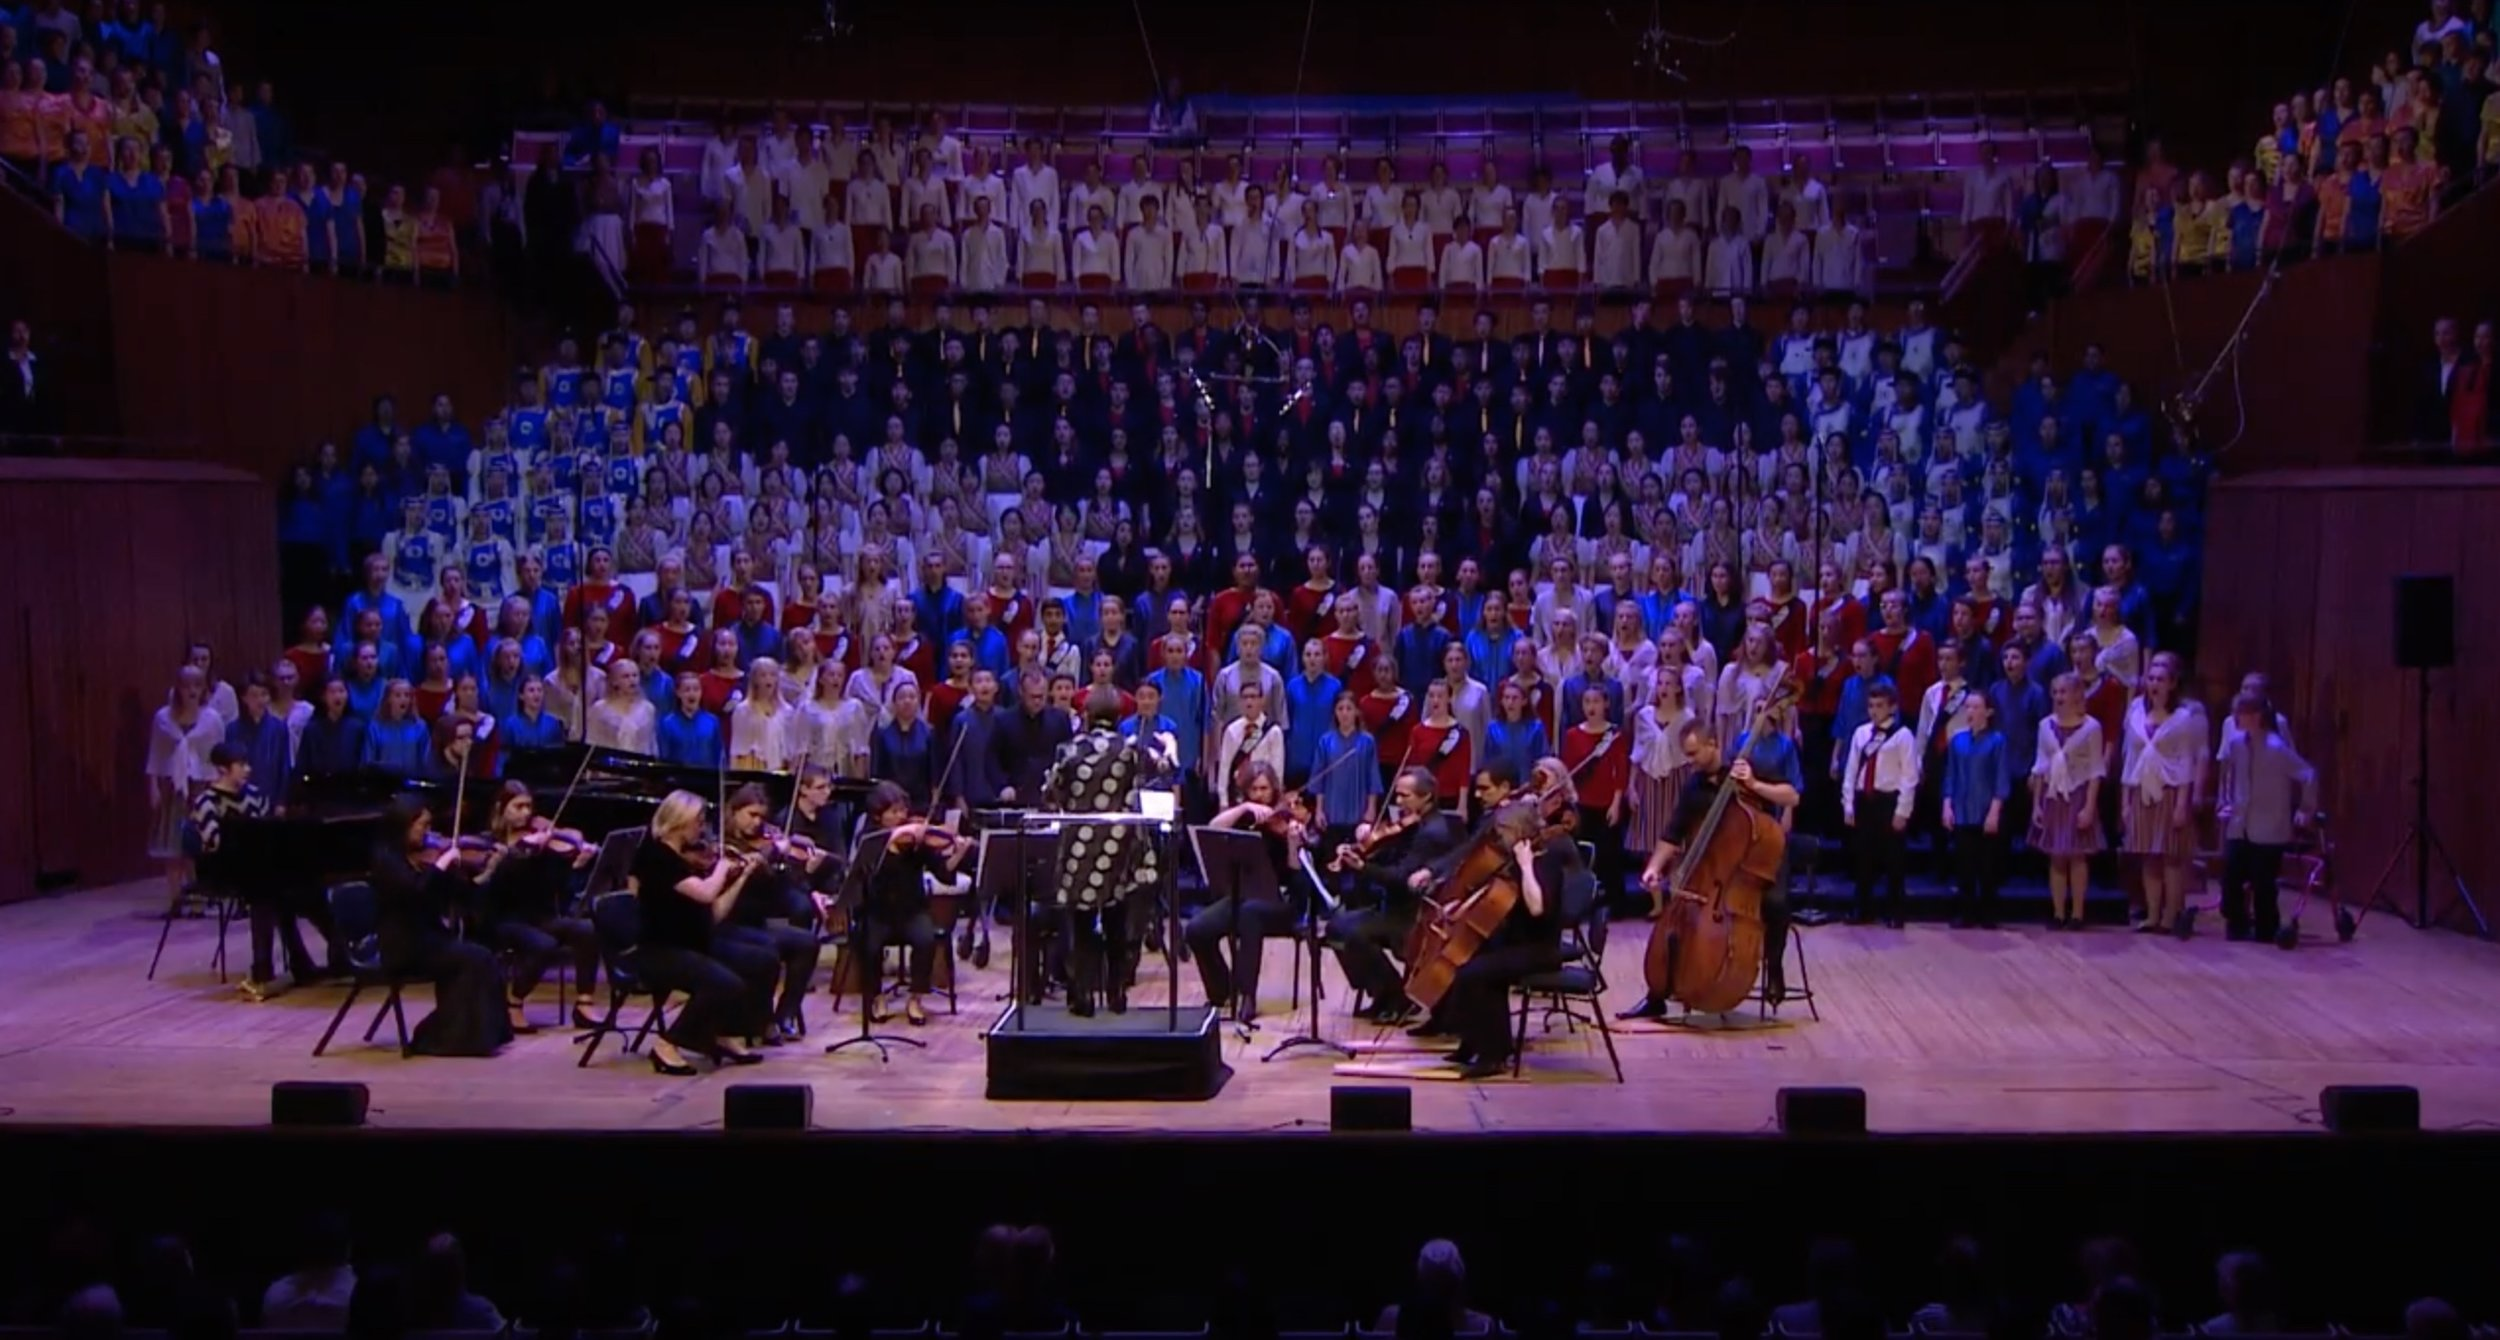 Sounds of the World - Closing Gala